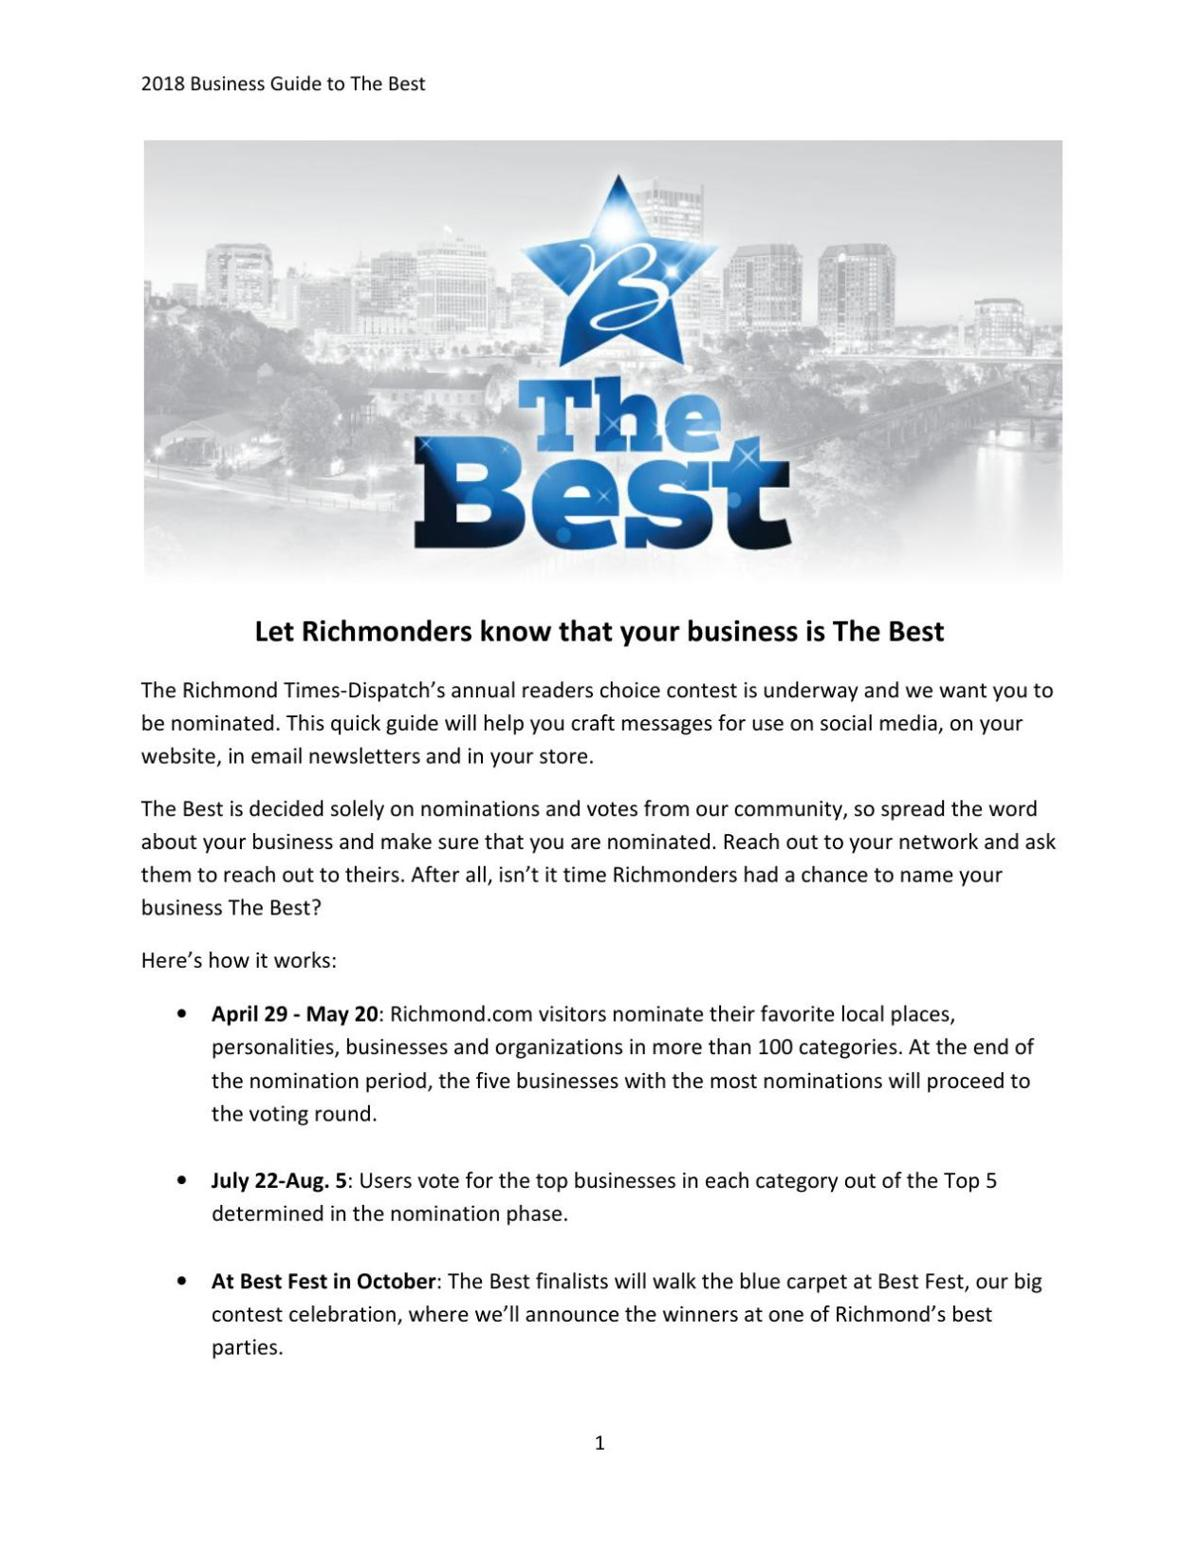 Business promotions guide to The Best